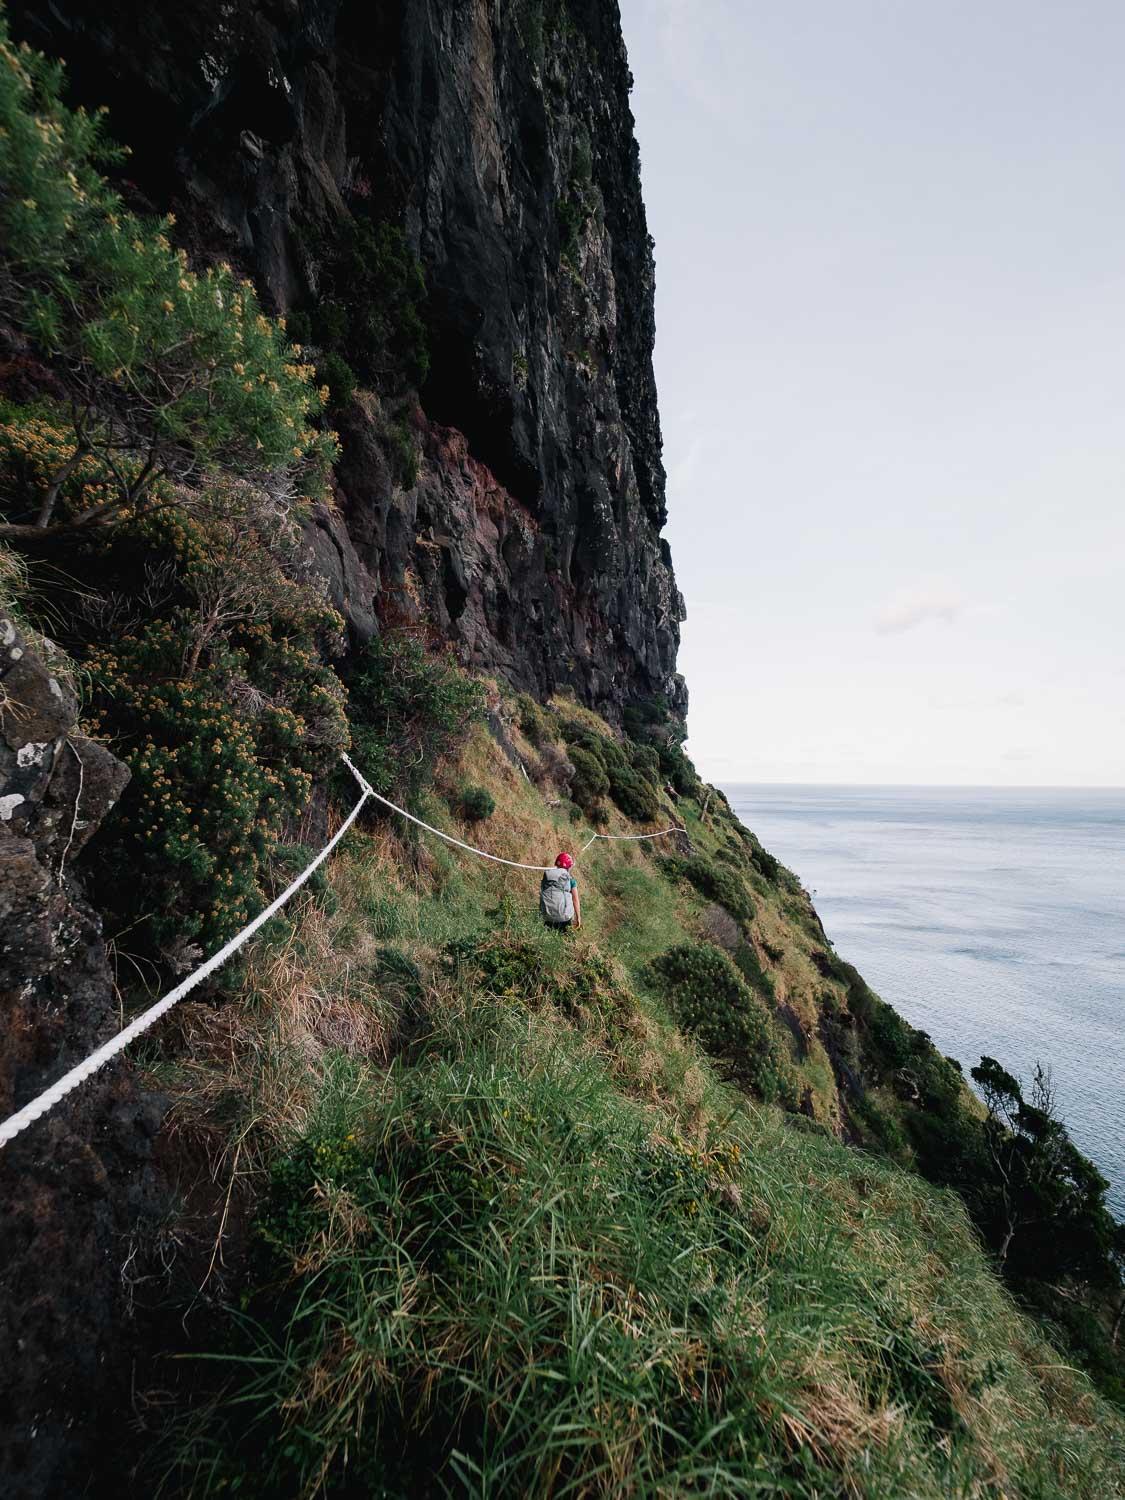 Lord Howe Island's Photography Hot Spots, Matt Horspool, rope, cliff edge, sketchy, steep, long drop, ocean,